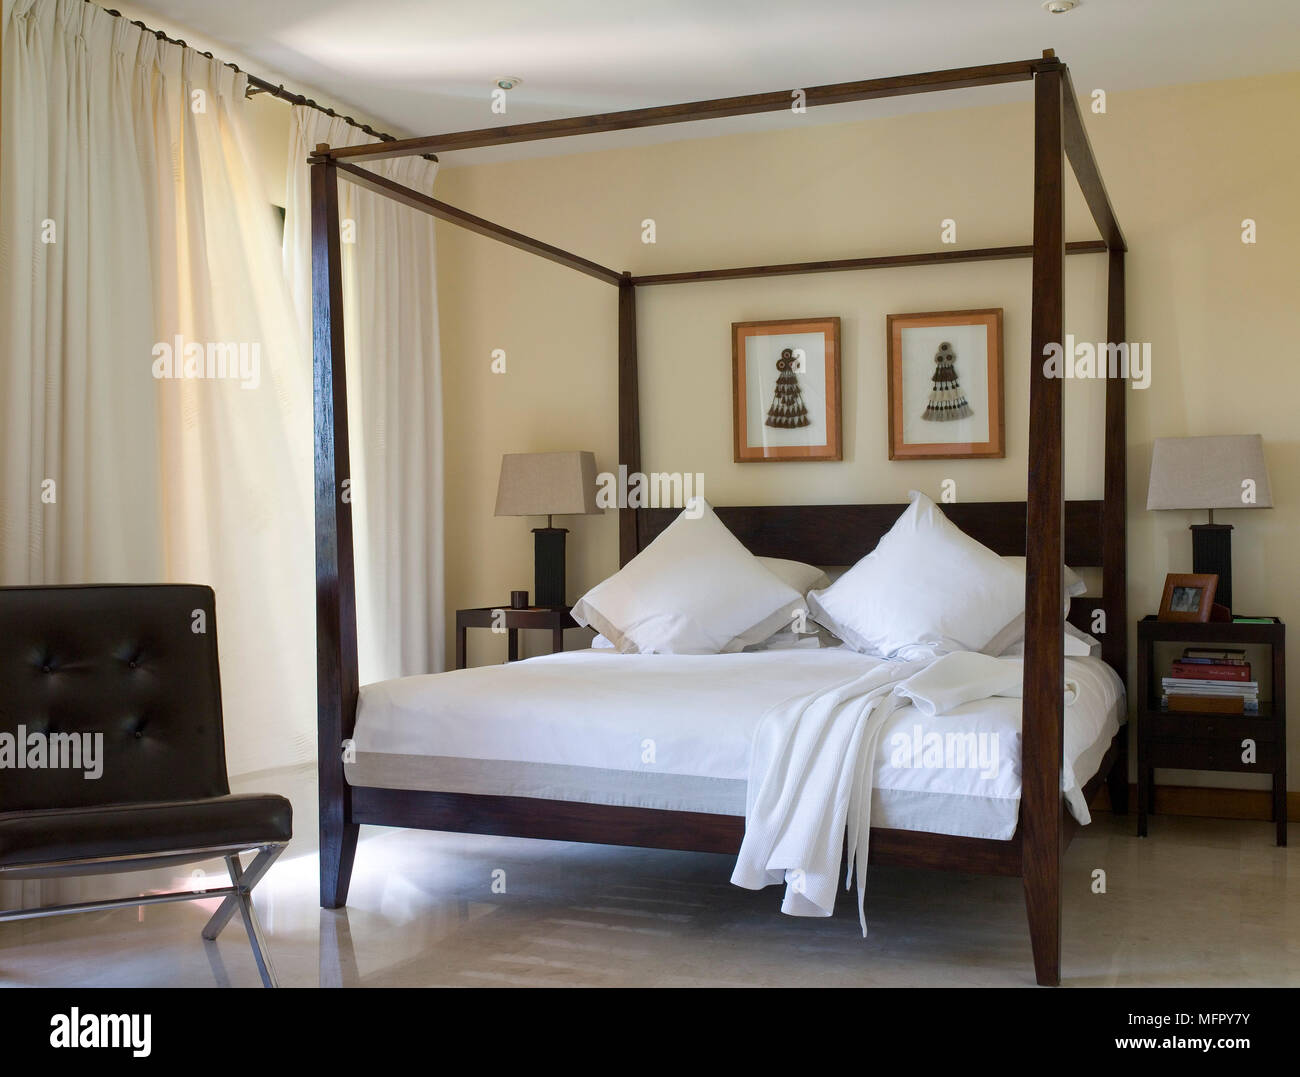 https www alamy com mies van der rohe at foot of four poster bed in modern bedroom image181827855 html